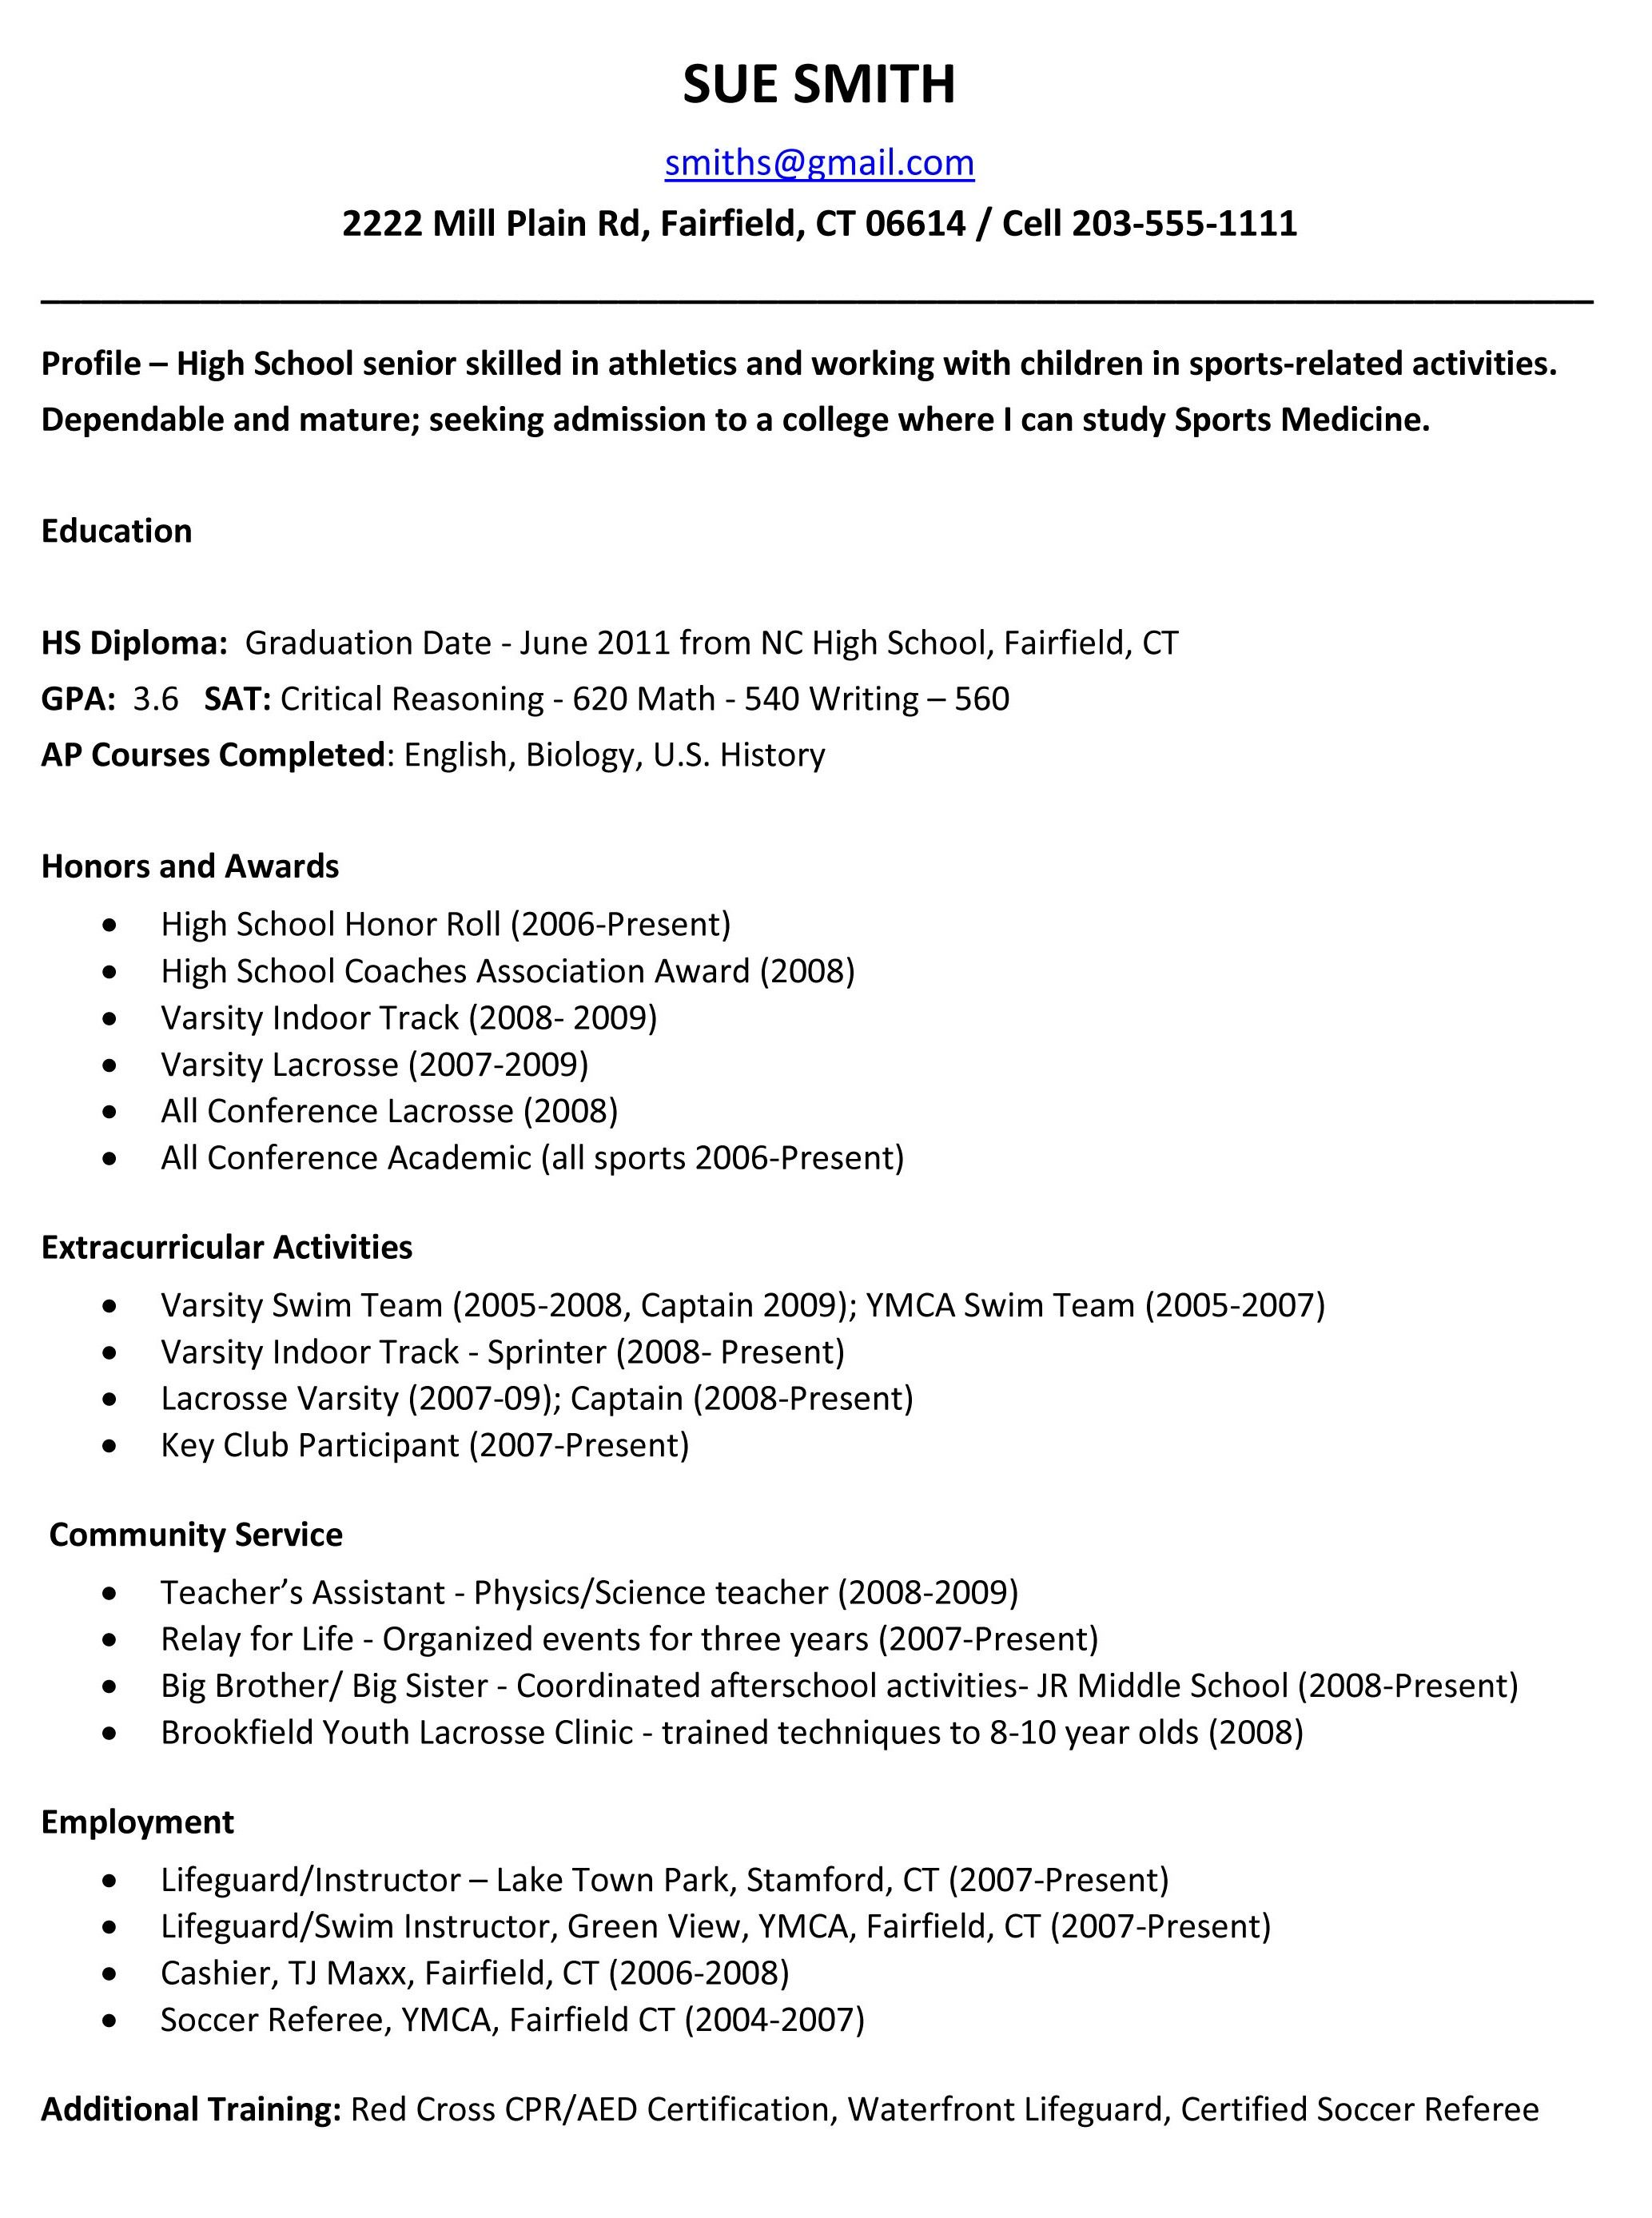 example resume for high school students for college applications school resume templateregularmidwesternerscom regularmidwesterners - Academic Resume Template For High School Students